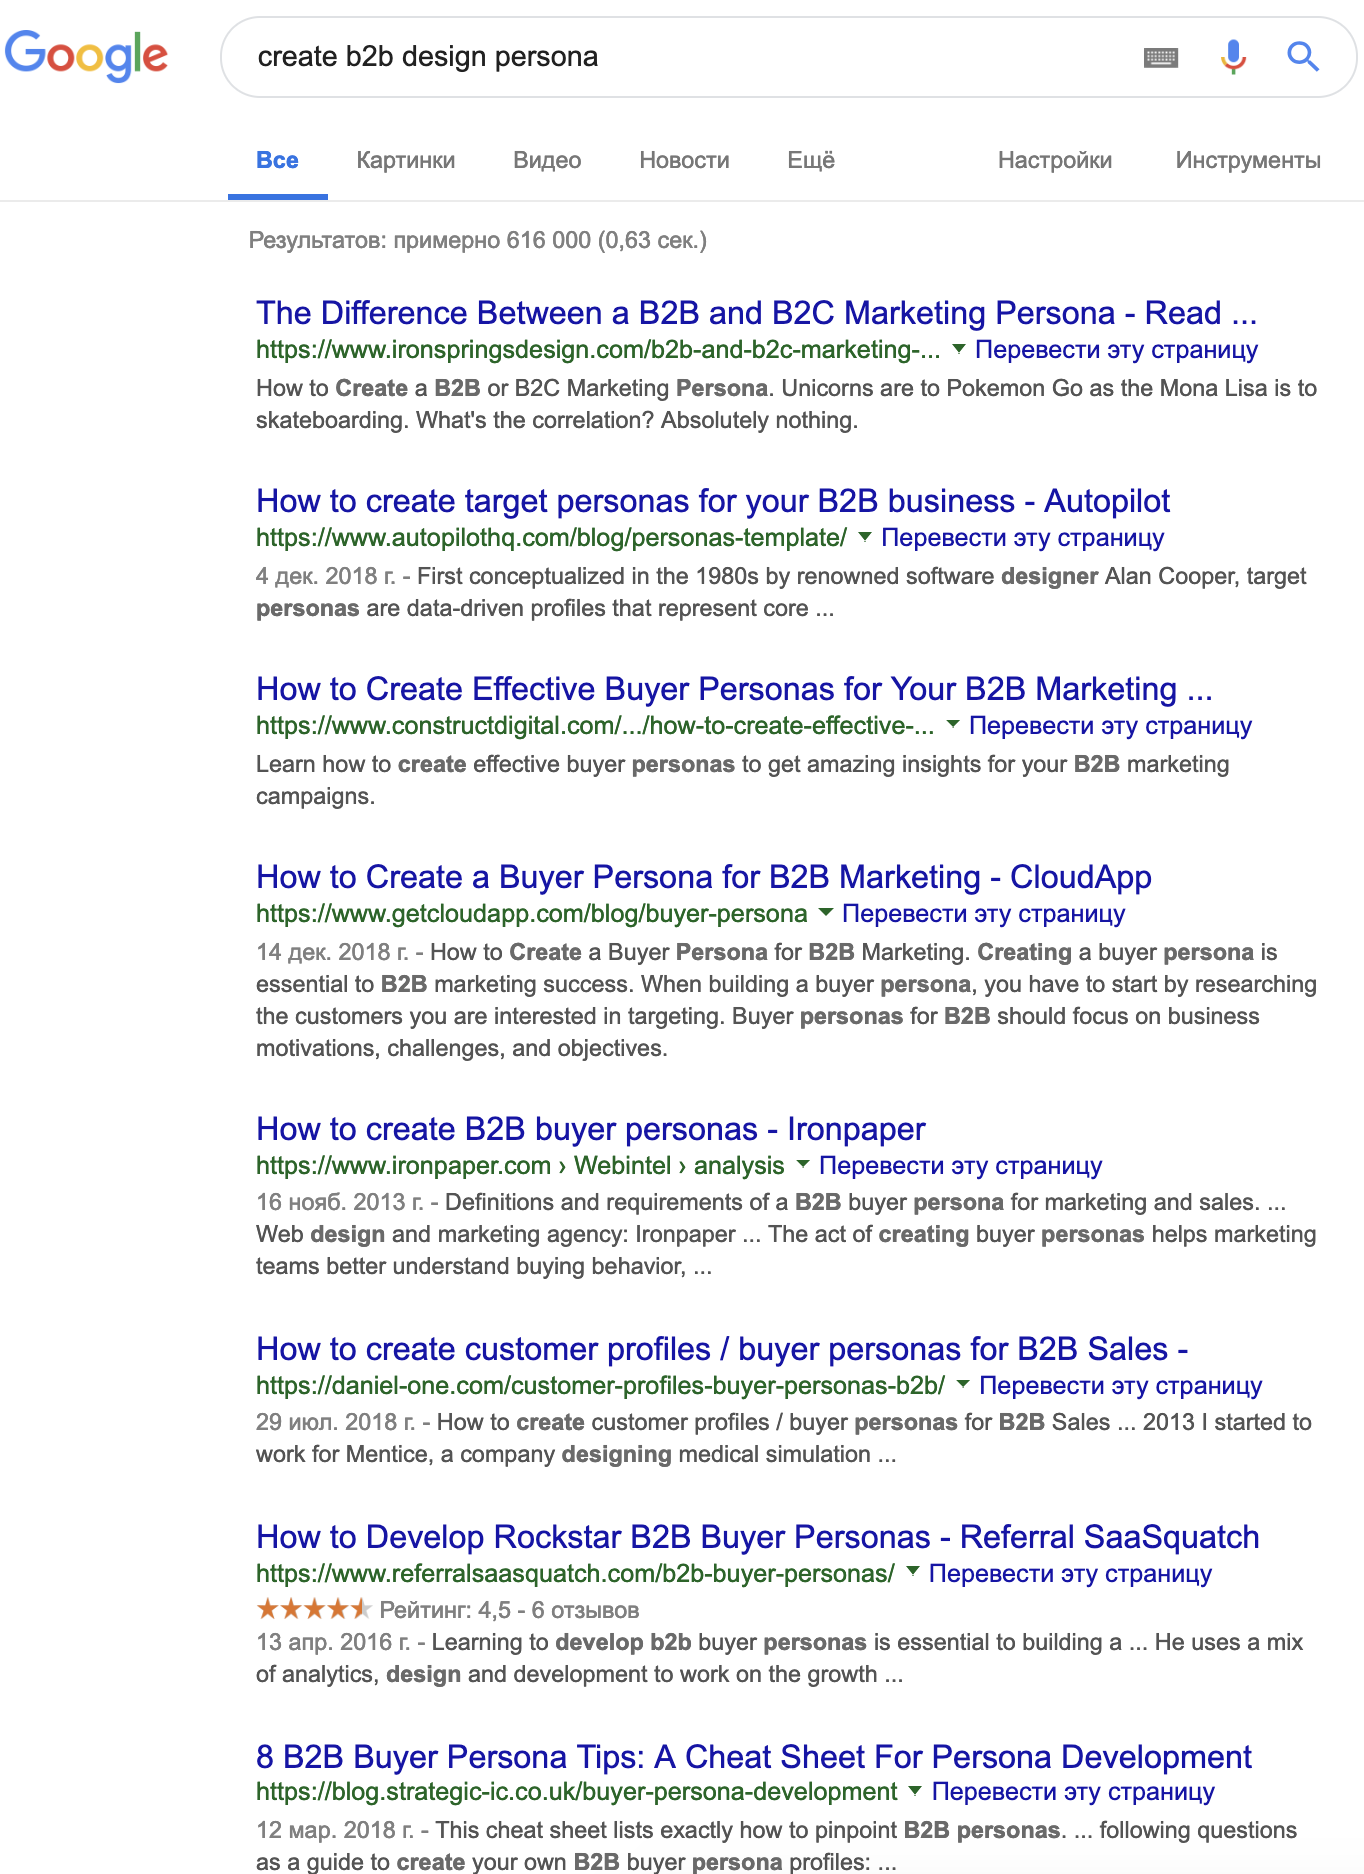 Effective Design Personas For B2b Products Persona B2b The